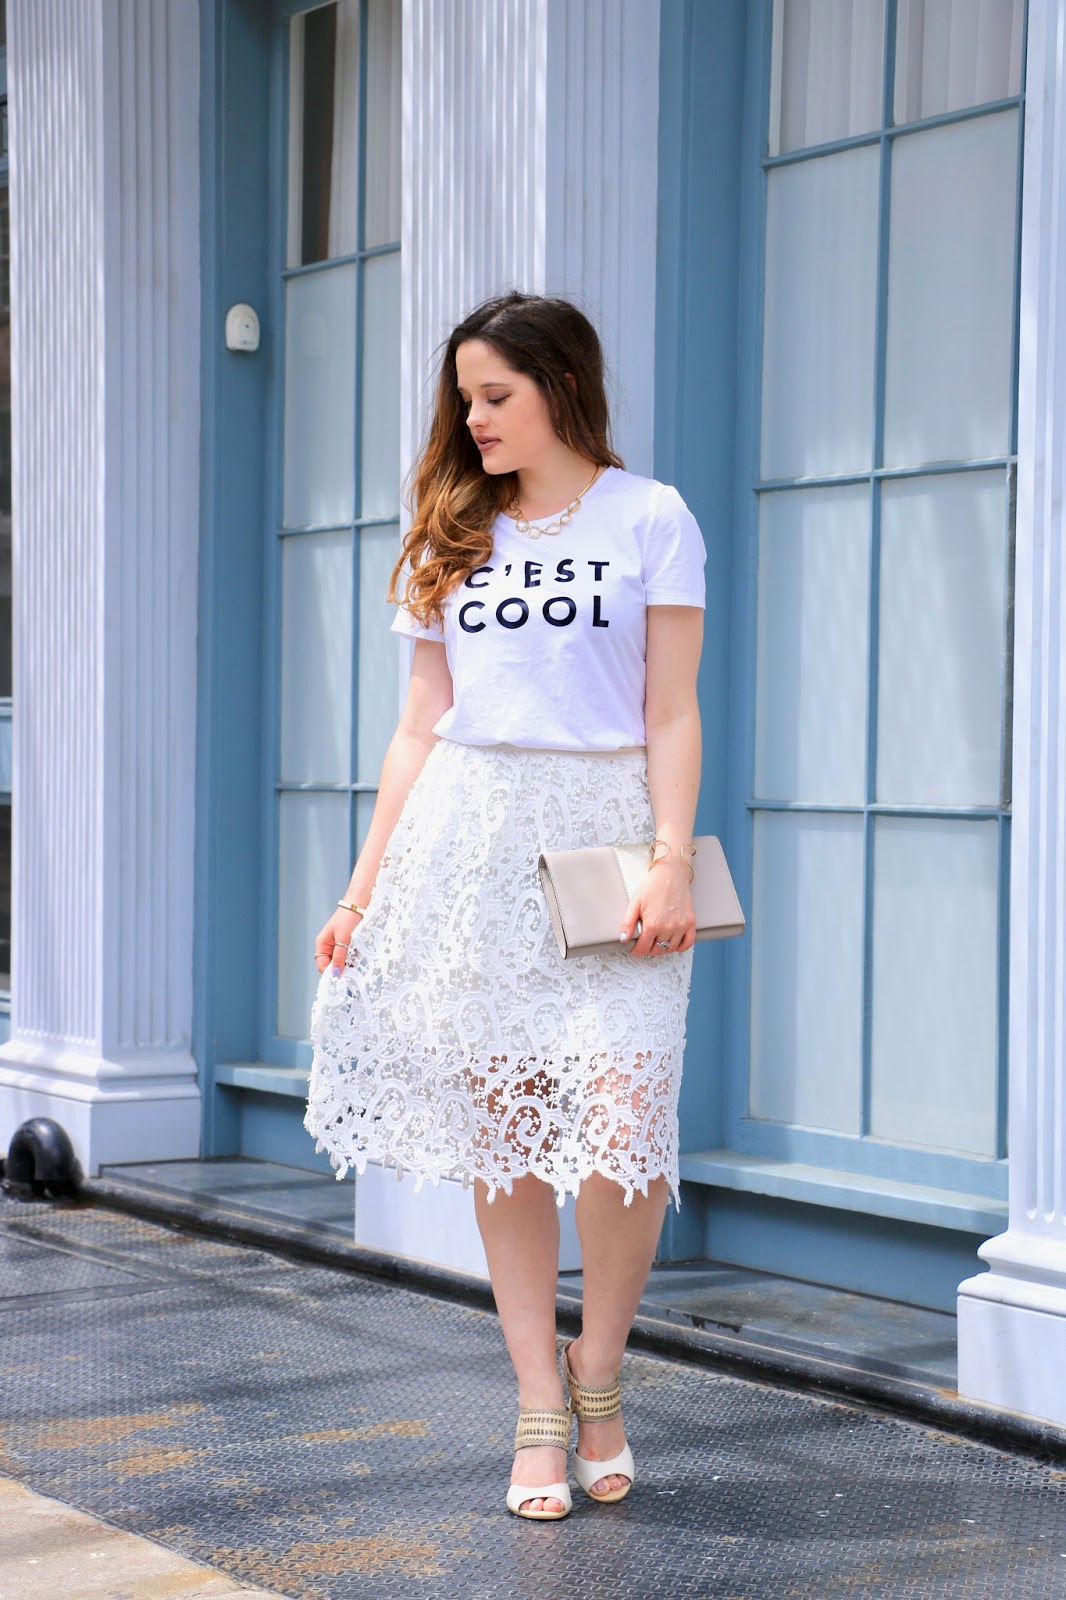 nyc fashion blogger Kathleen Harper showing how to wear a graphic tee to work